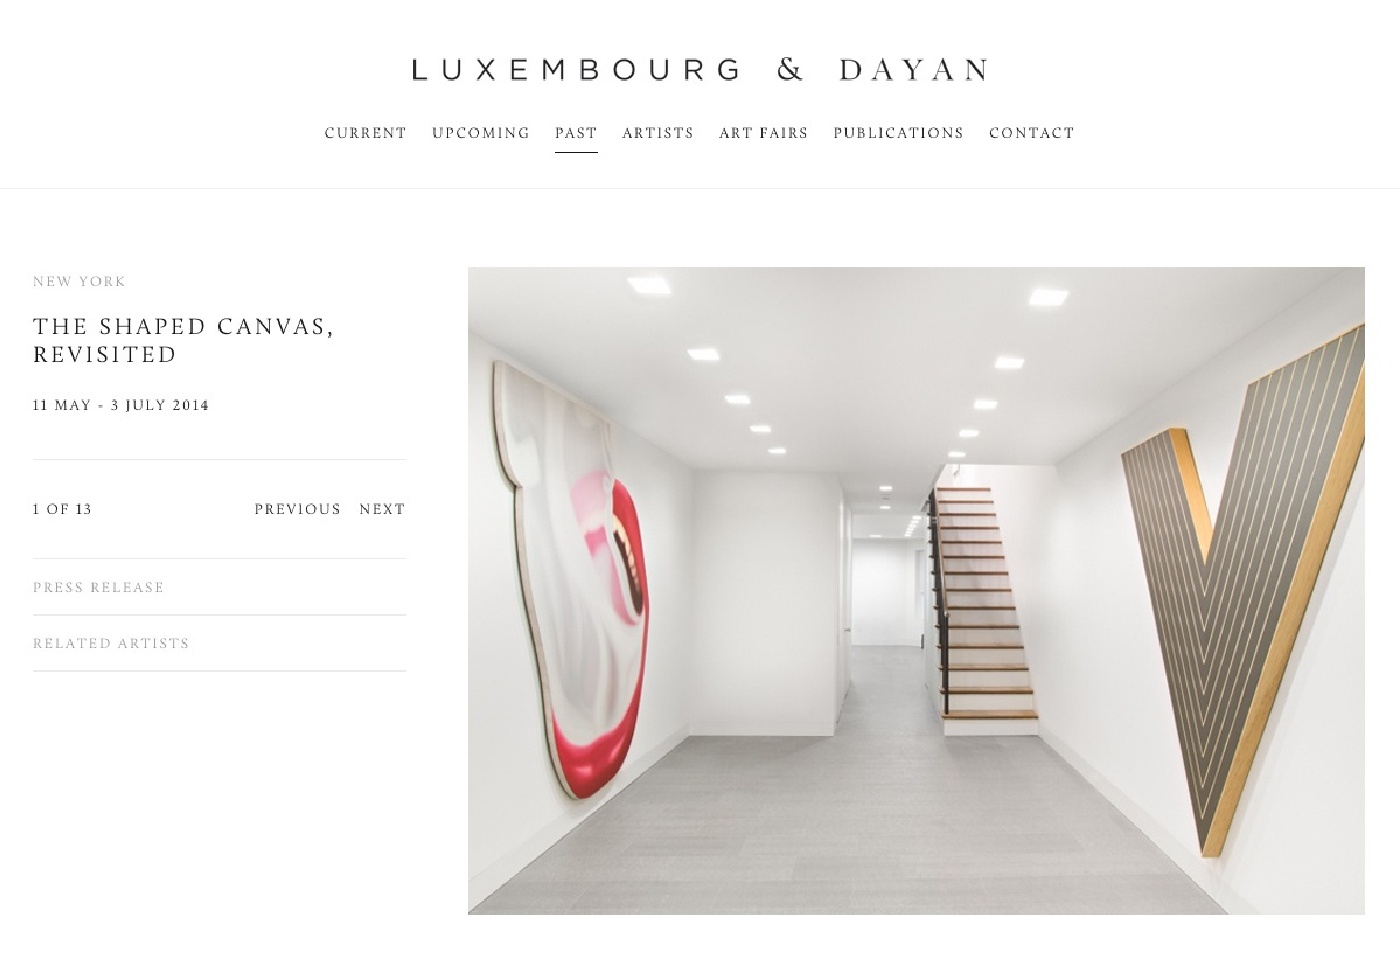 Luxembourg & Dayan